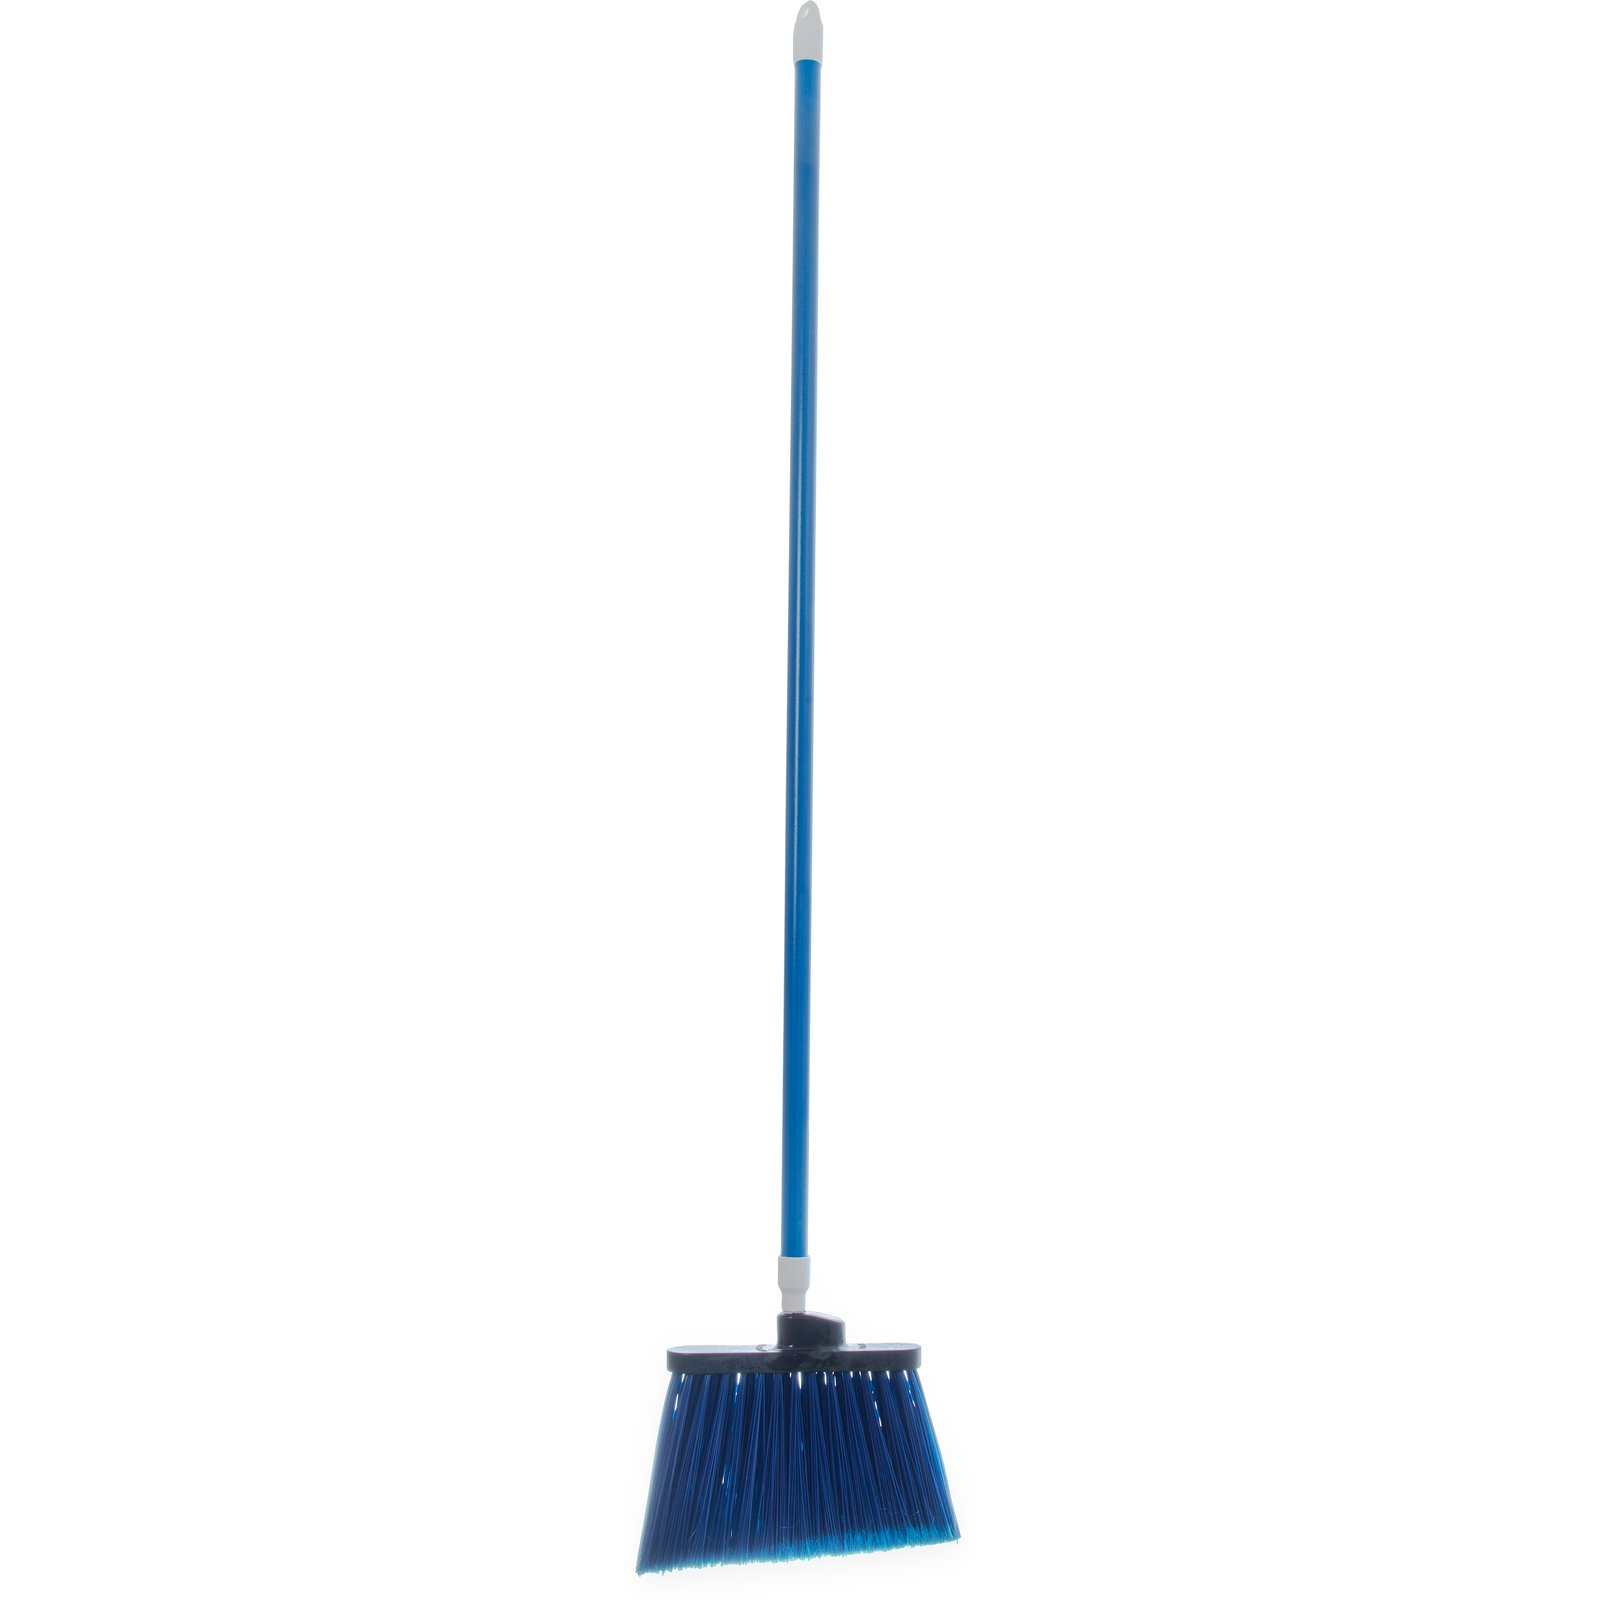 "BROOM 54"" FLAGGED ANGLE W/ POLYPROPYLENE BRISTLES BLUE"